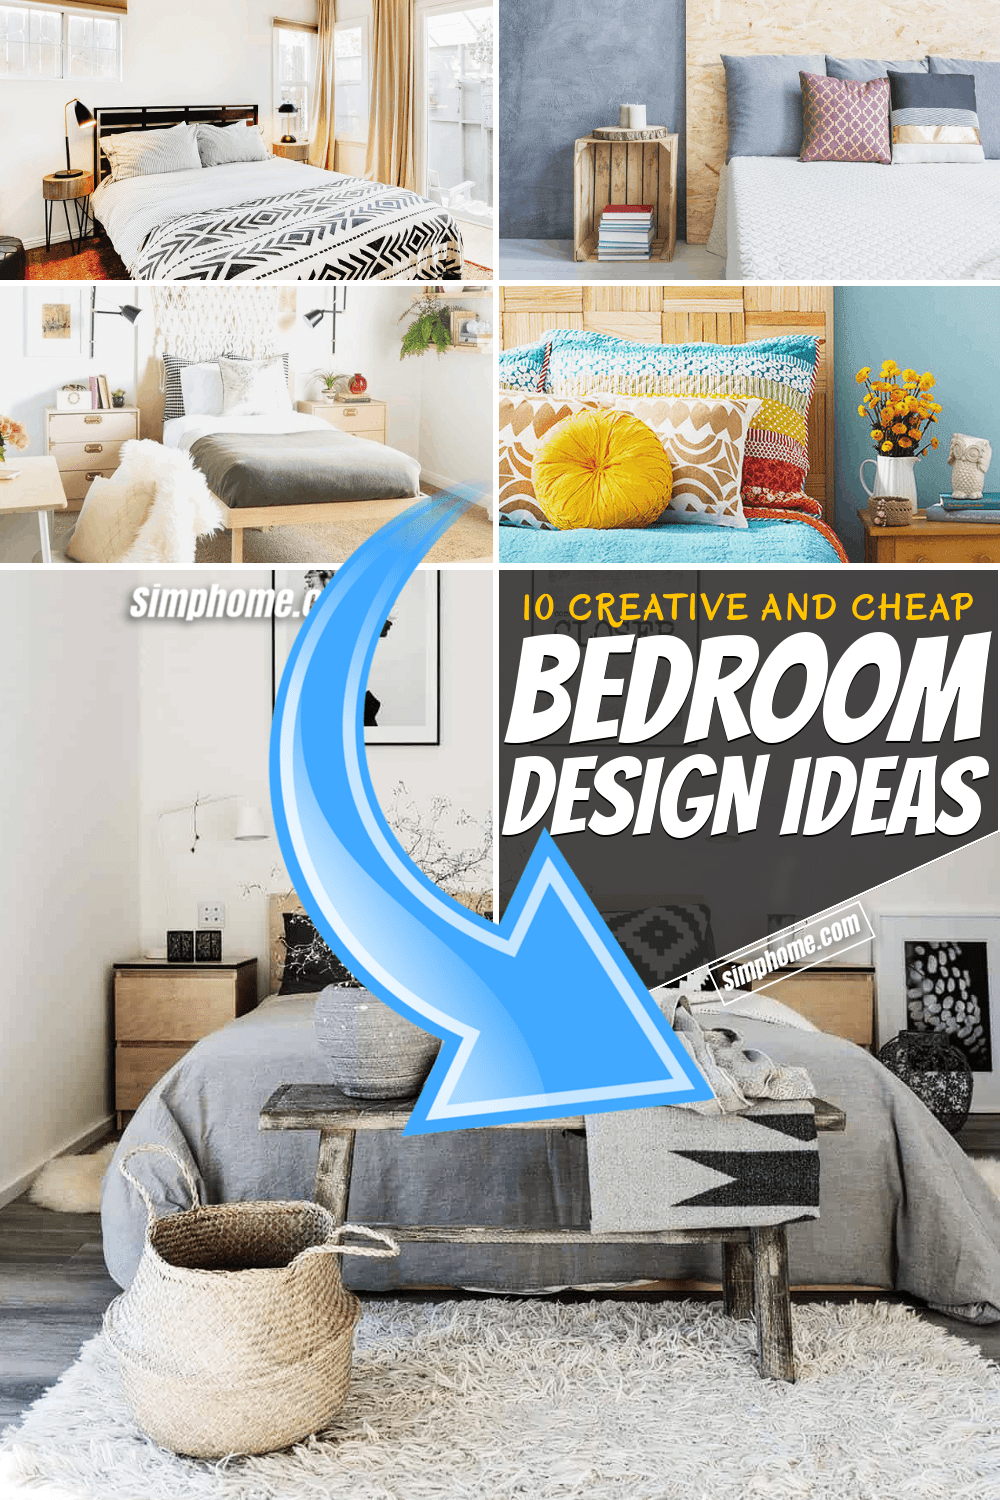 Simphome.com 10 Bedroom Design Idea for Cheap Pinterest Featured Image